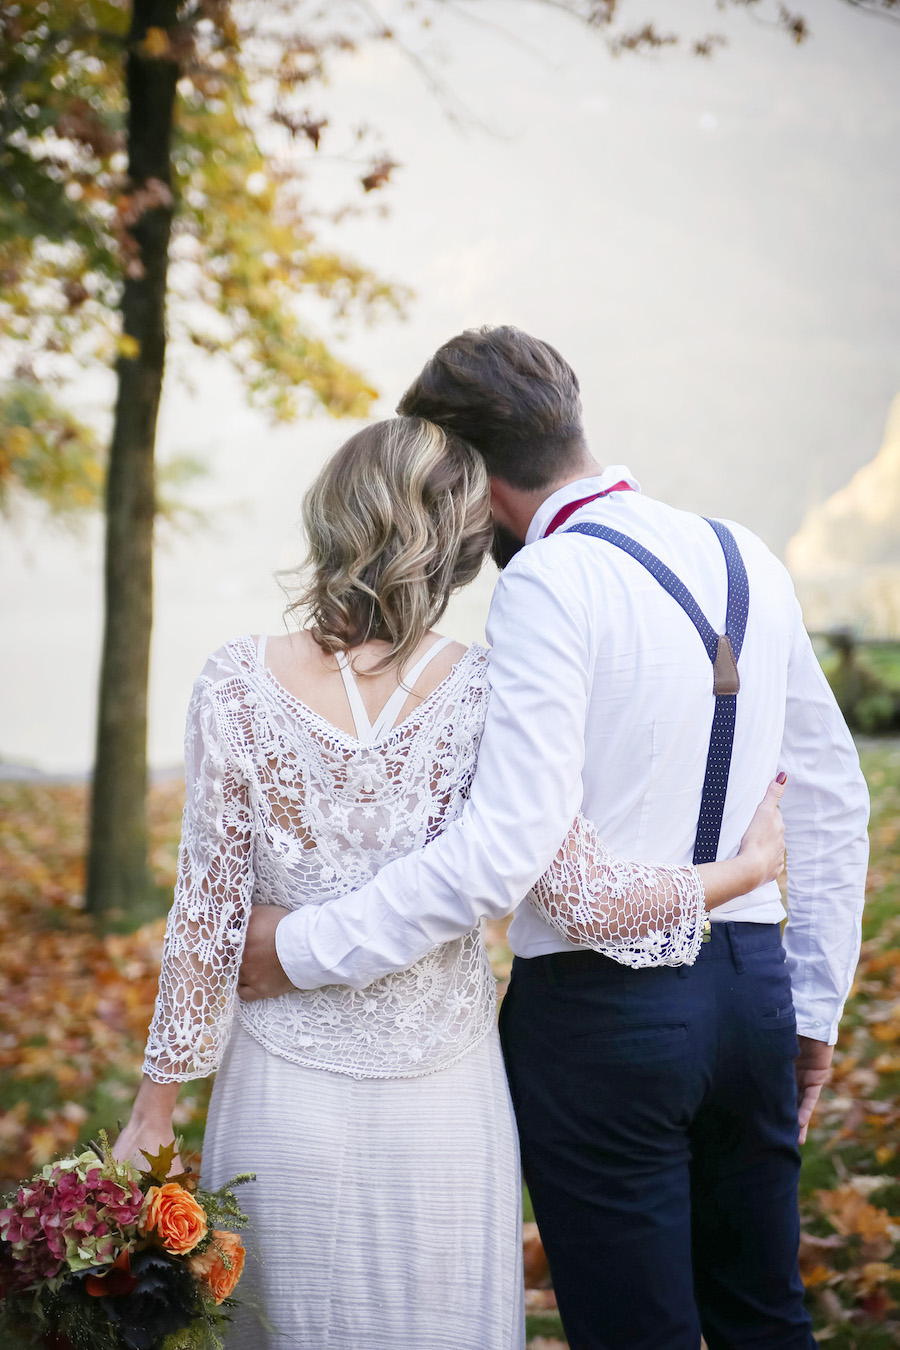 matrimonio-in-autunno-fil-blanc-17